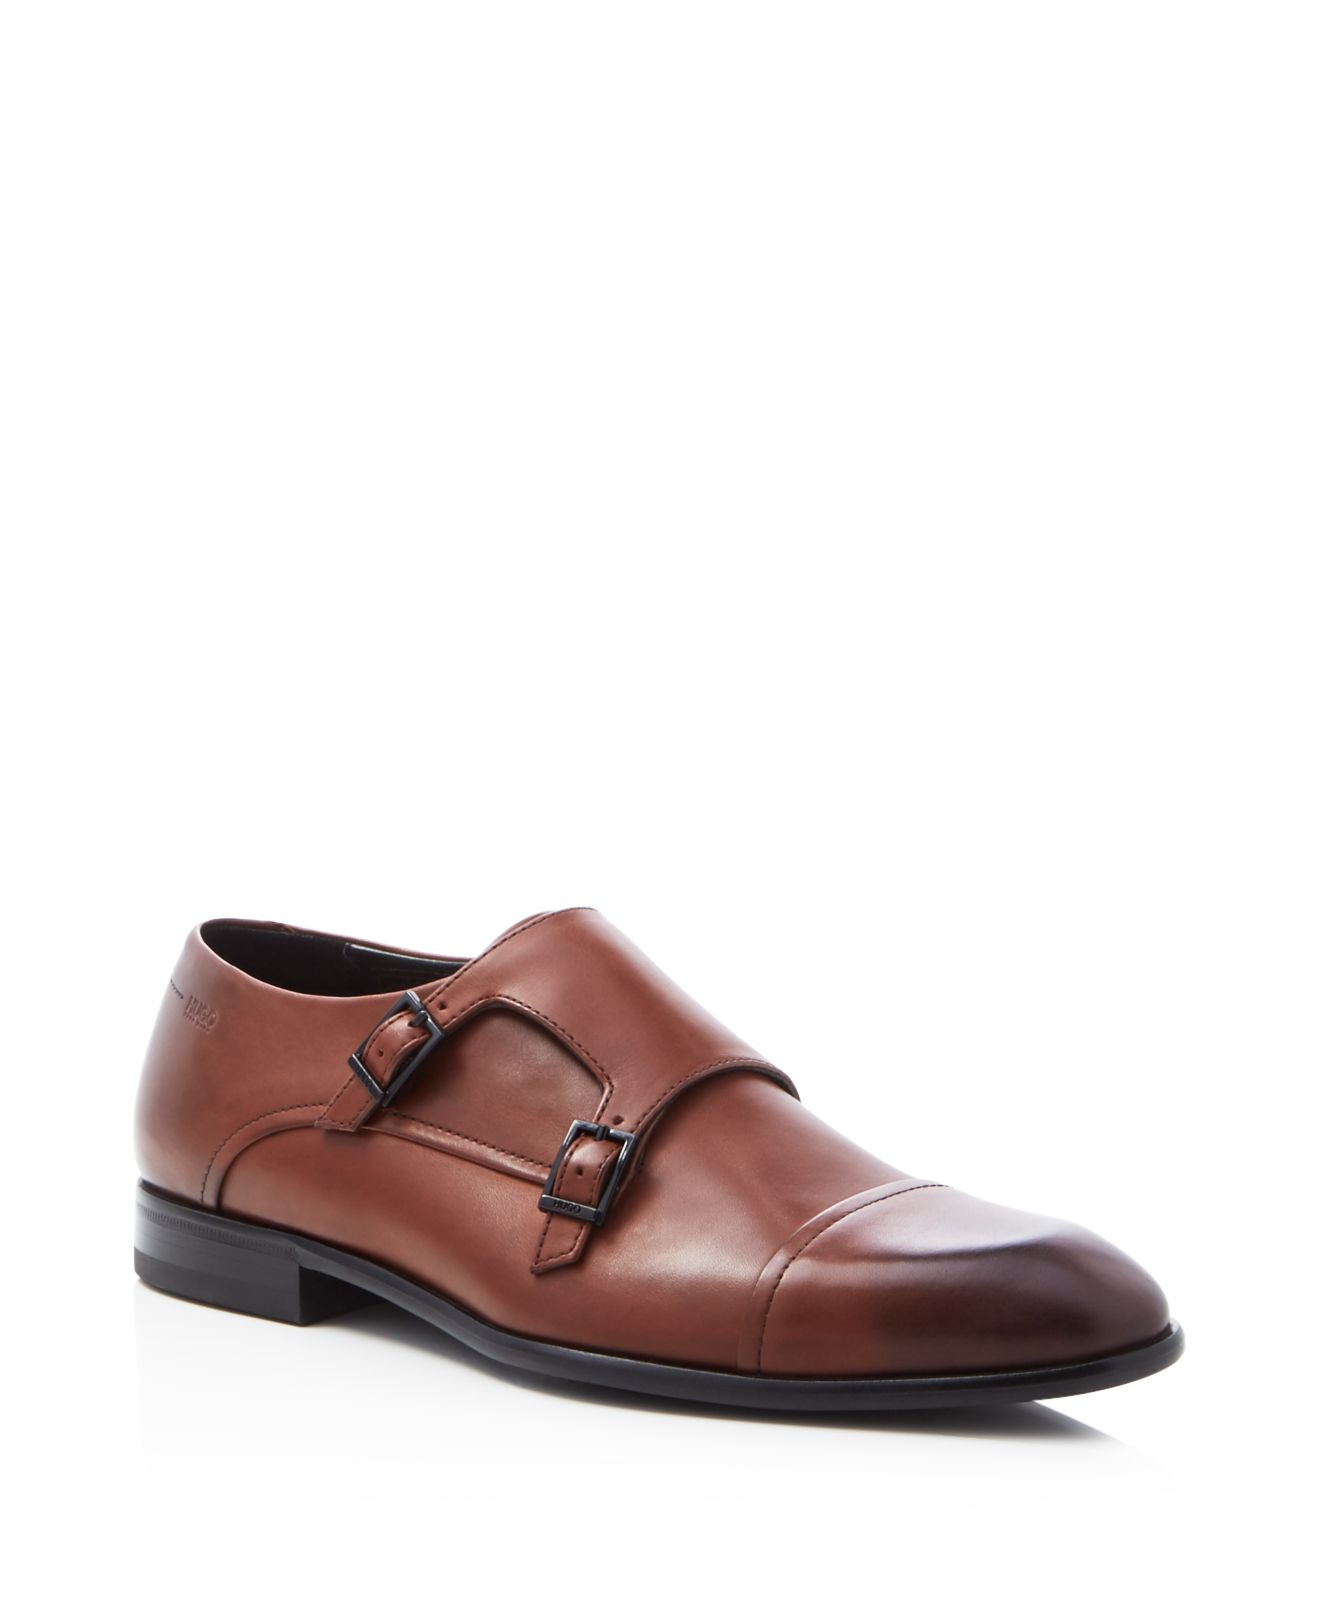 f691e2072b1 Lyst - HUGO Dressapp Double Monk Strap Cap Toe Loafers in Brown for Men